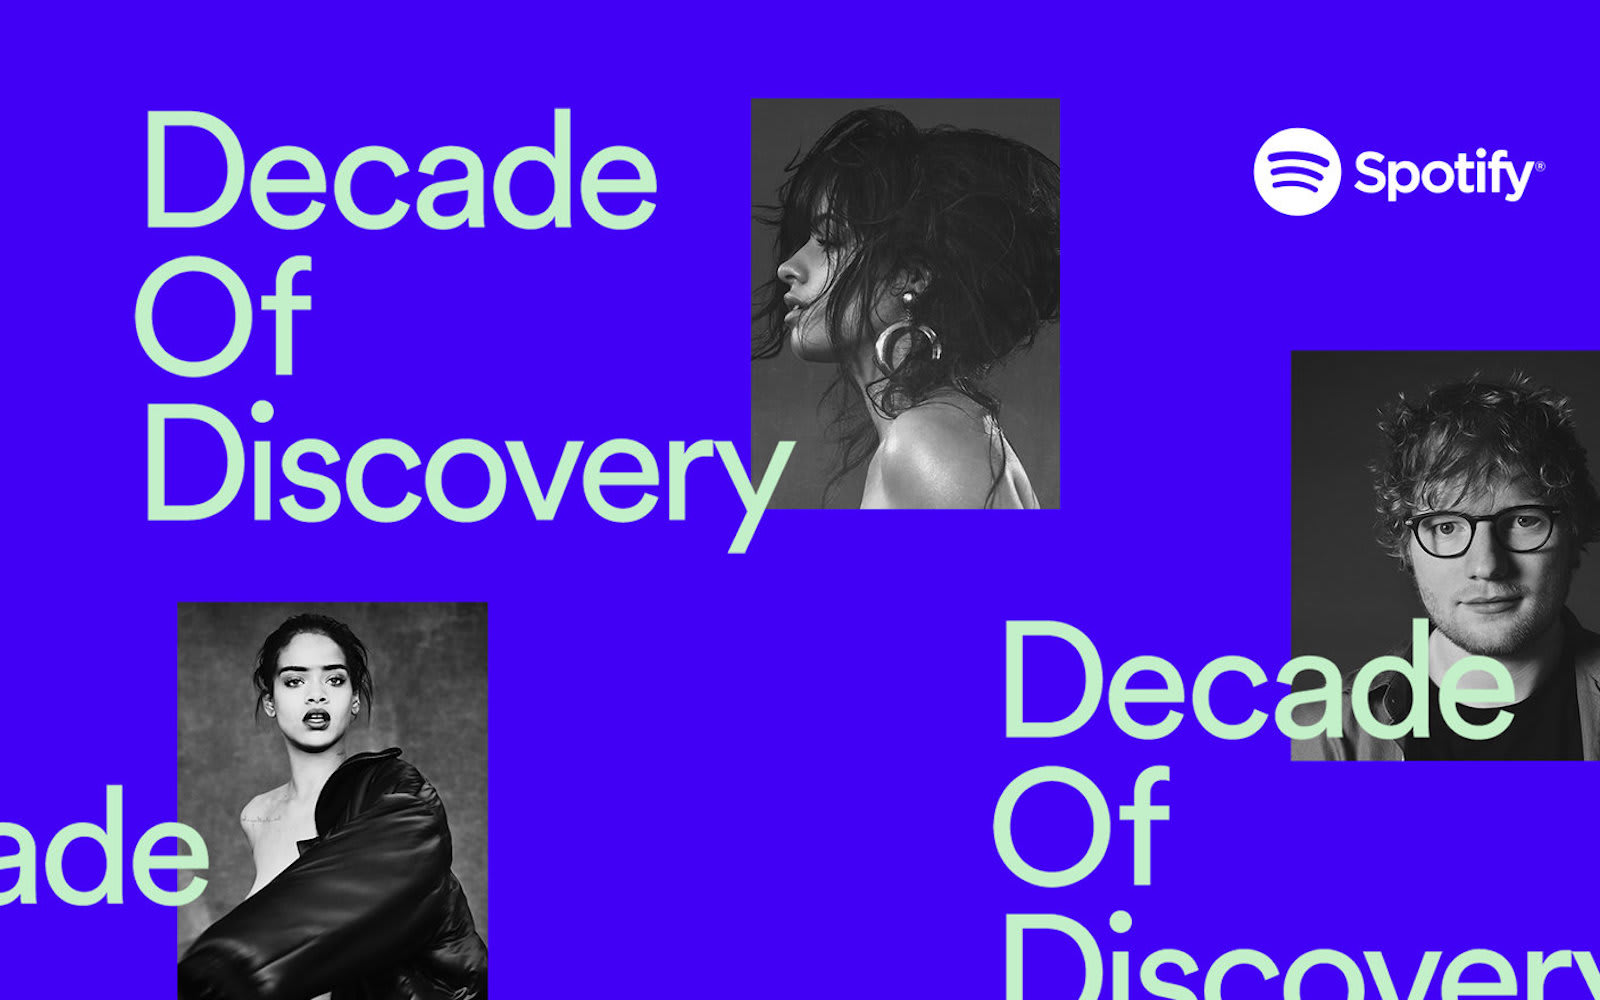 Spotify reveals its most-played music for its 10th anniversary